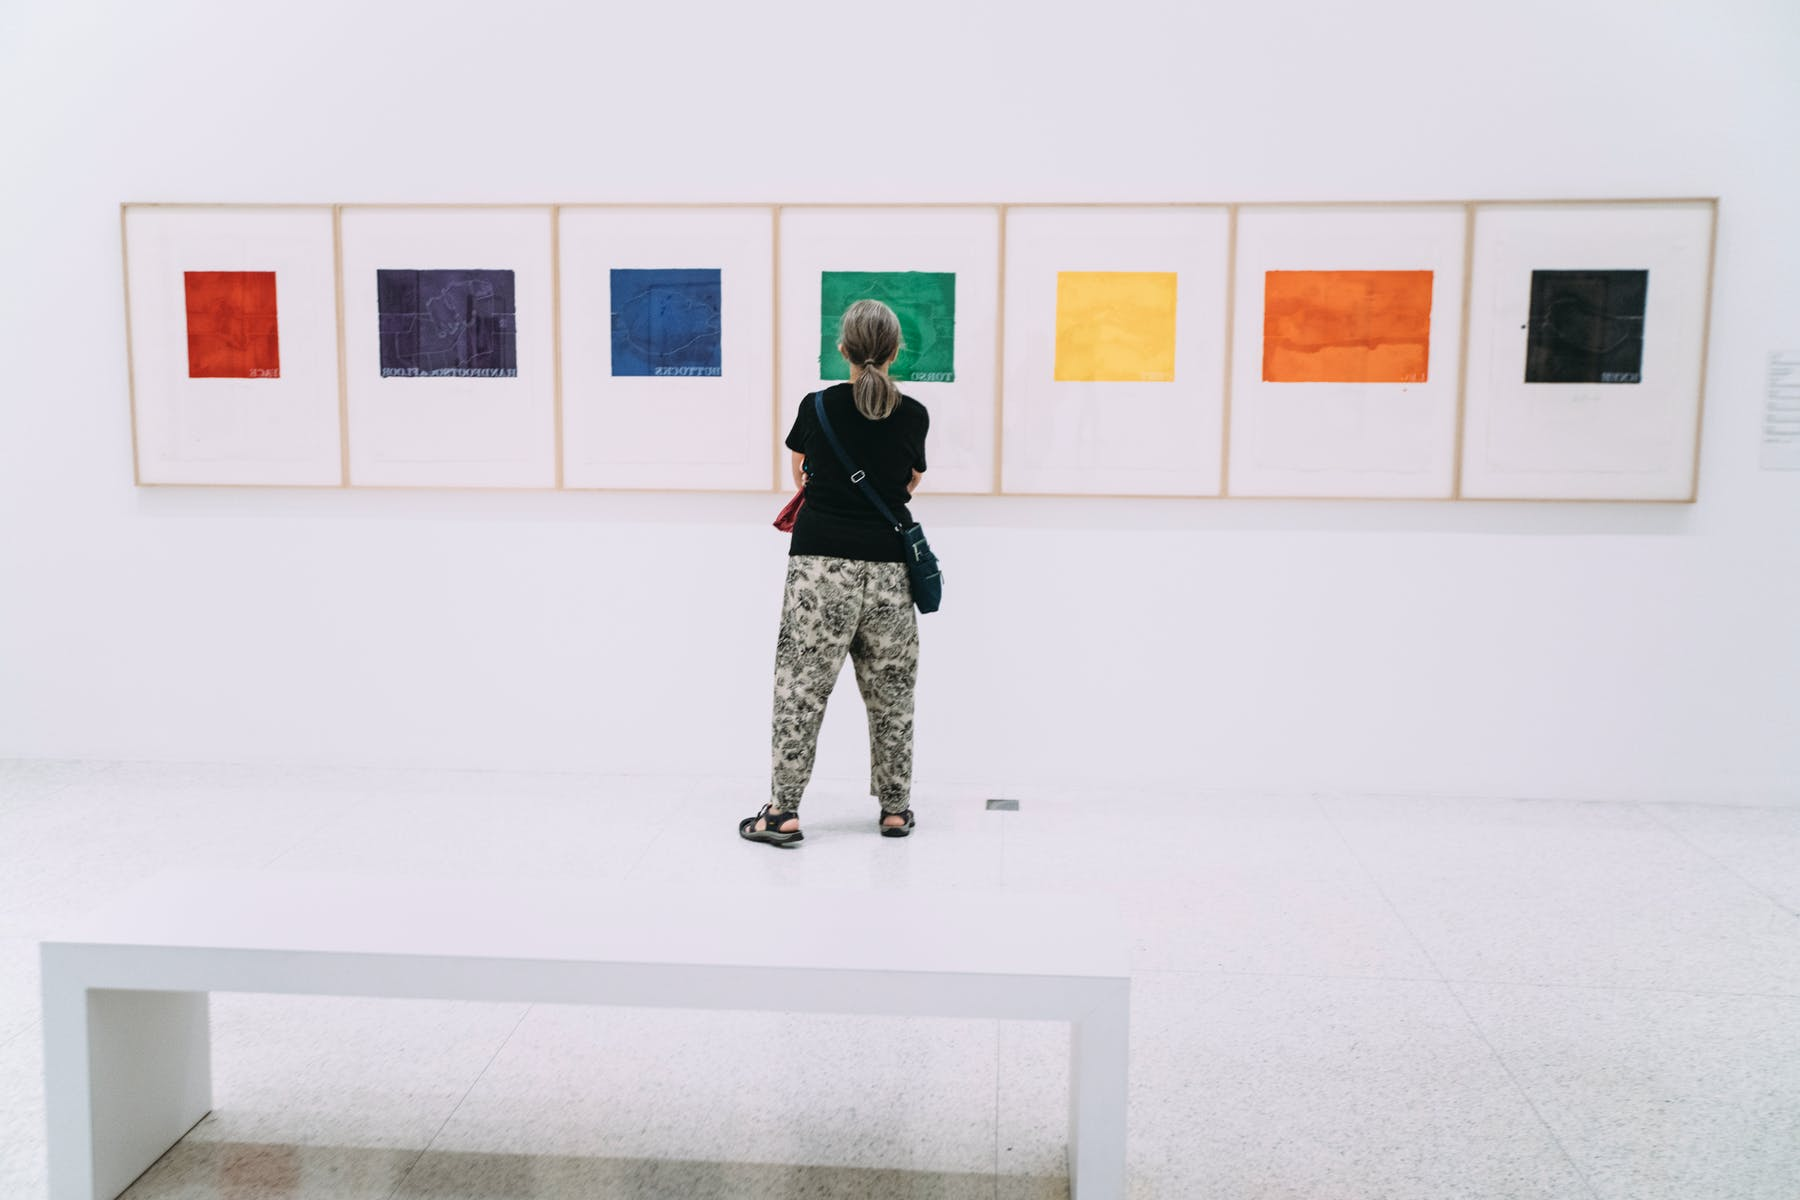 Woman standing in gallery in front of five paintings with colored squares